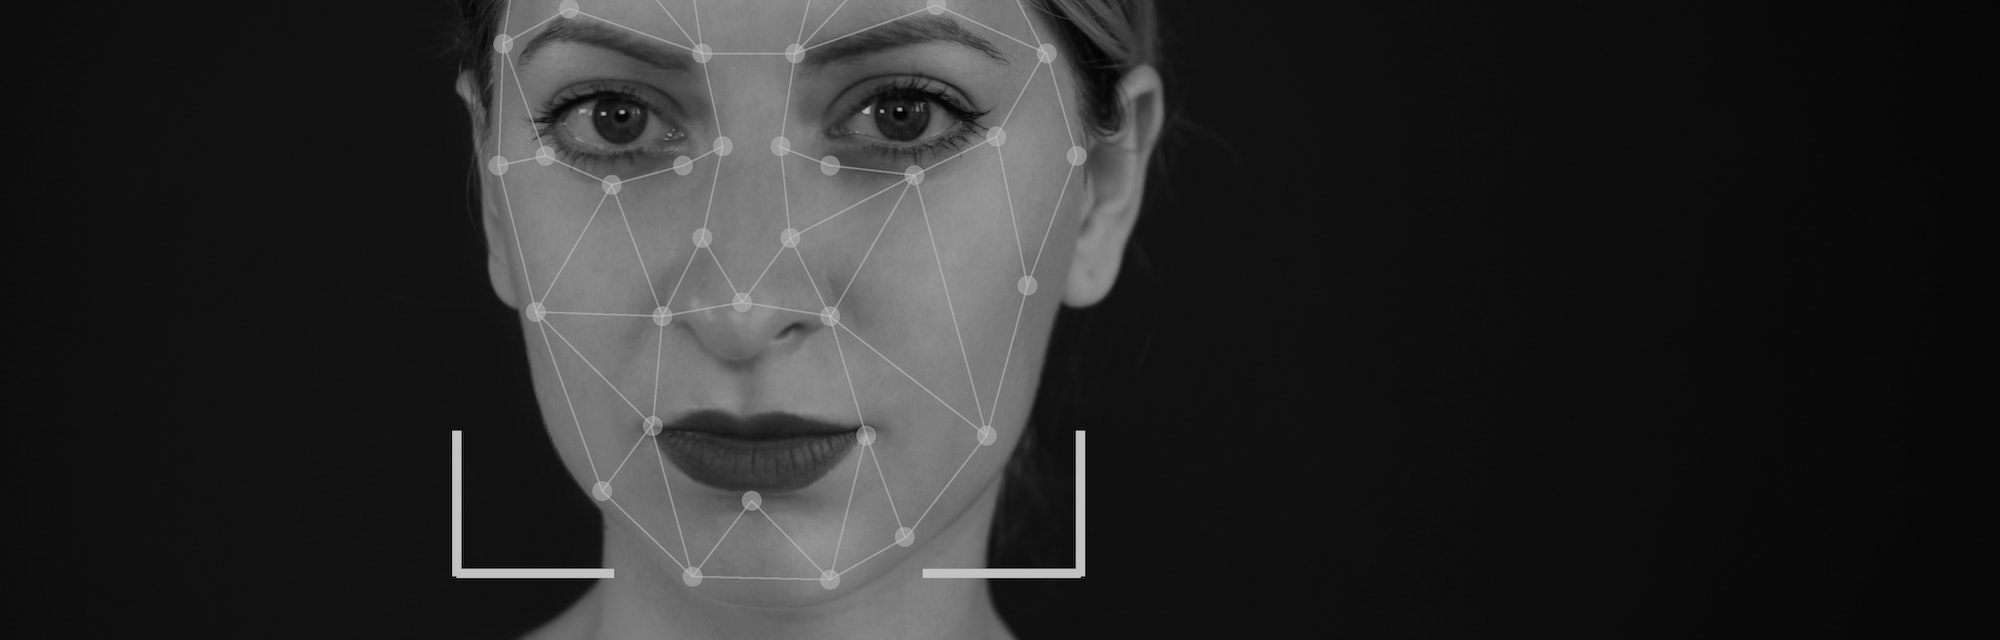 Face Recognition of a woman